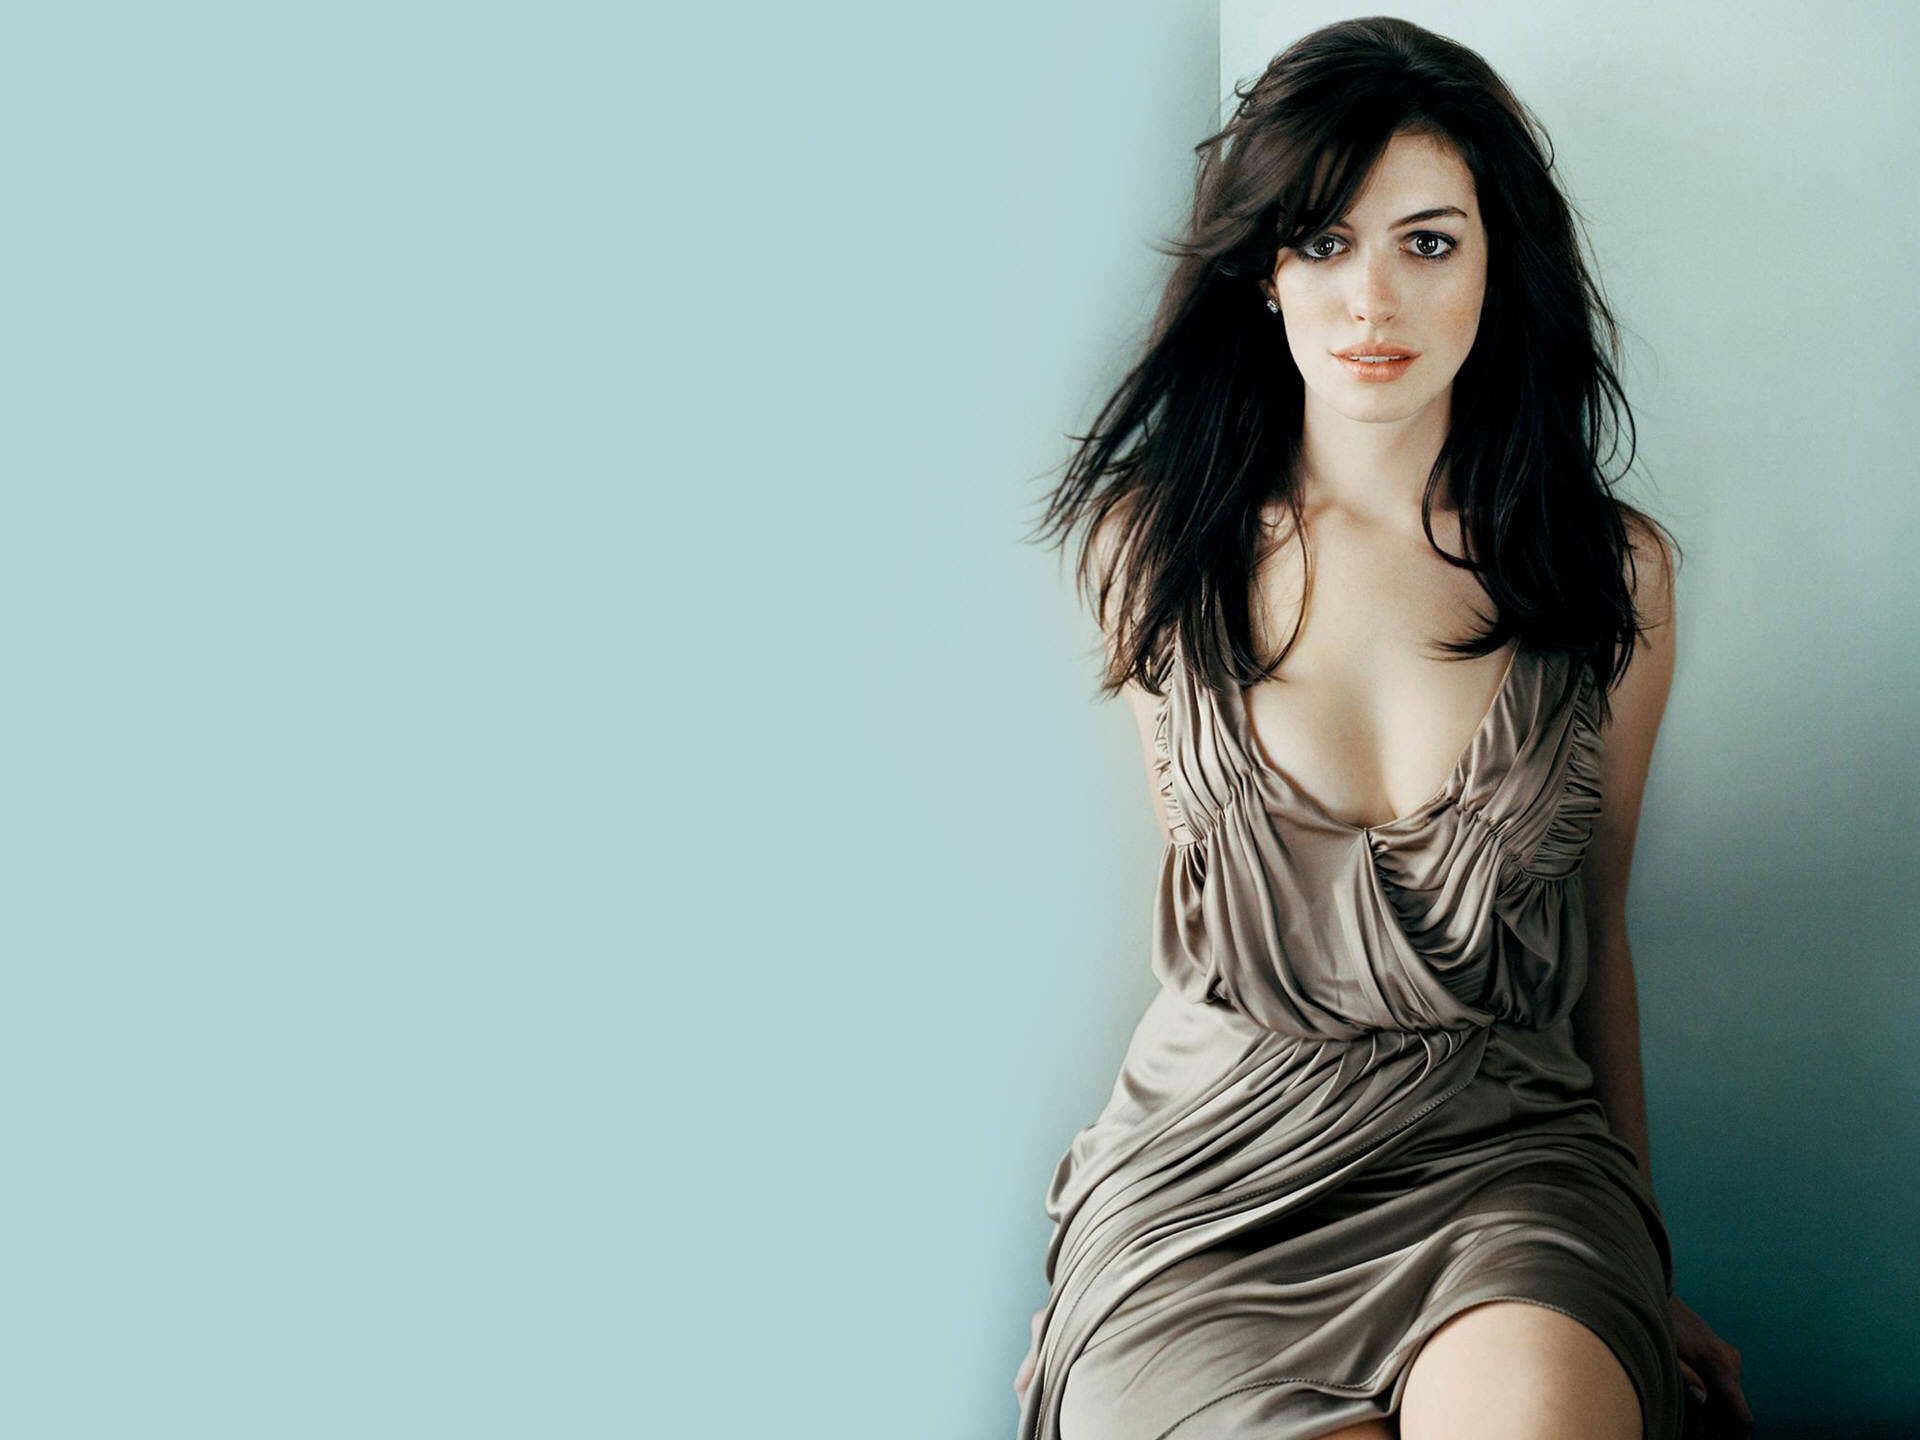 1920x1440 - Anne Hathaway Wallpapers 3